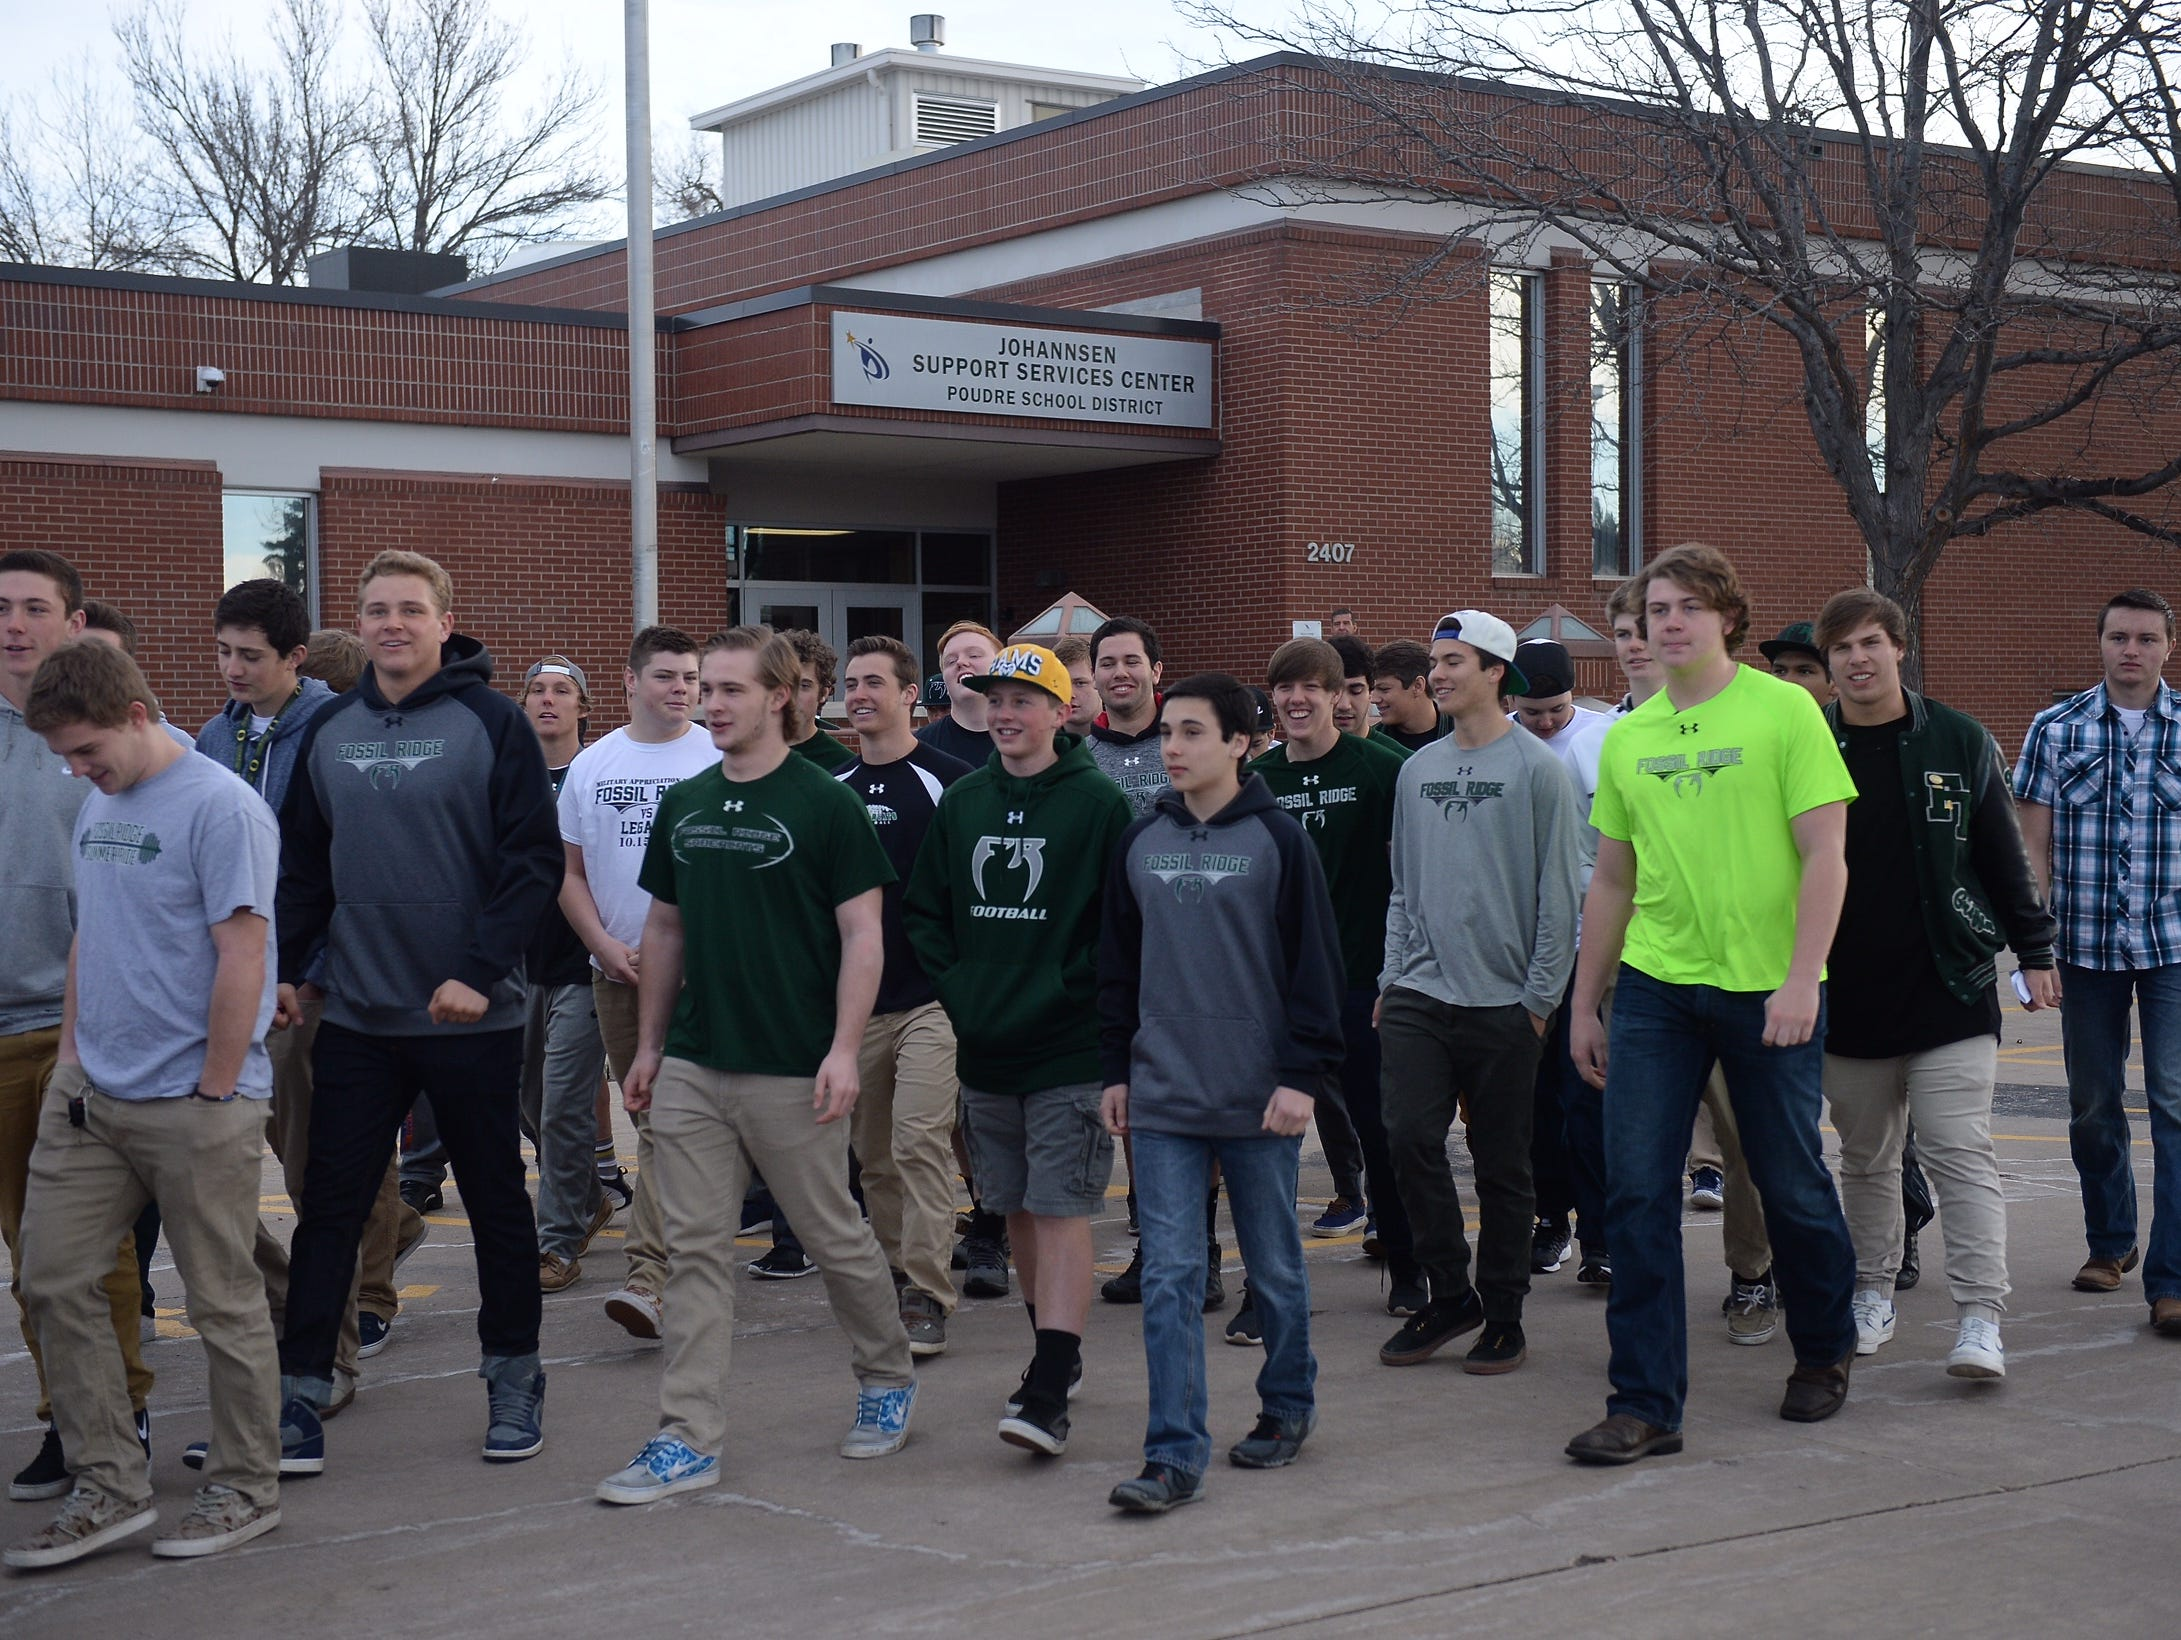 Fossil Ridge football players leave the PSD Support Services building after delivering letters showing support for coach Brian Tinker after he was fired on Friday.